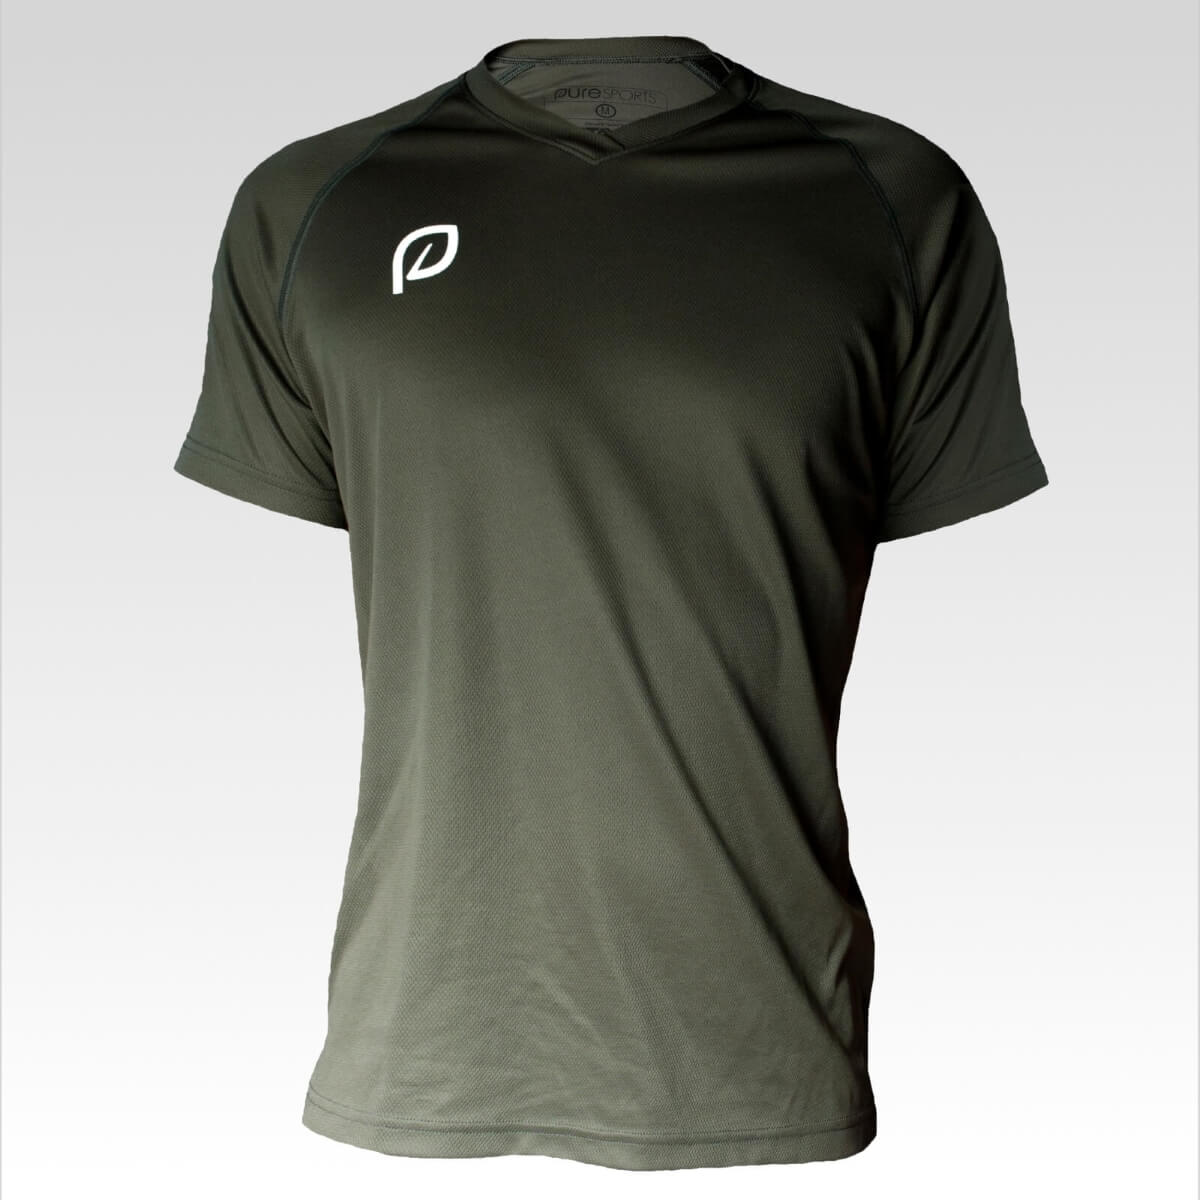 Sportshirt heren groen/bruin - 100% gerecycled polyester from Pure Sportswear